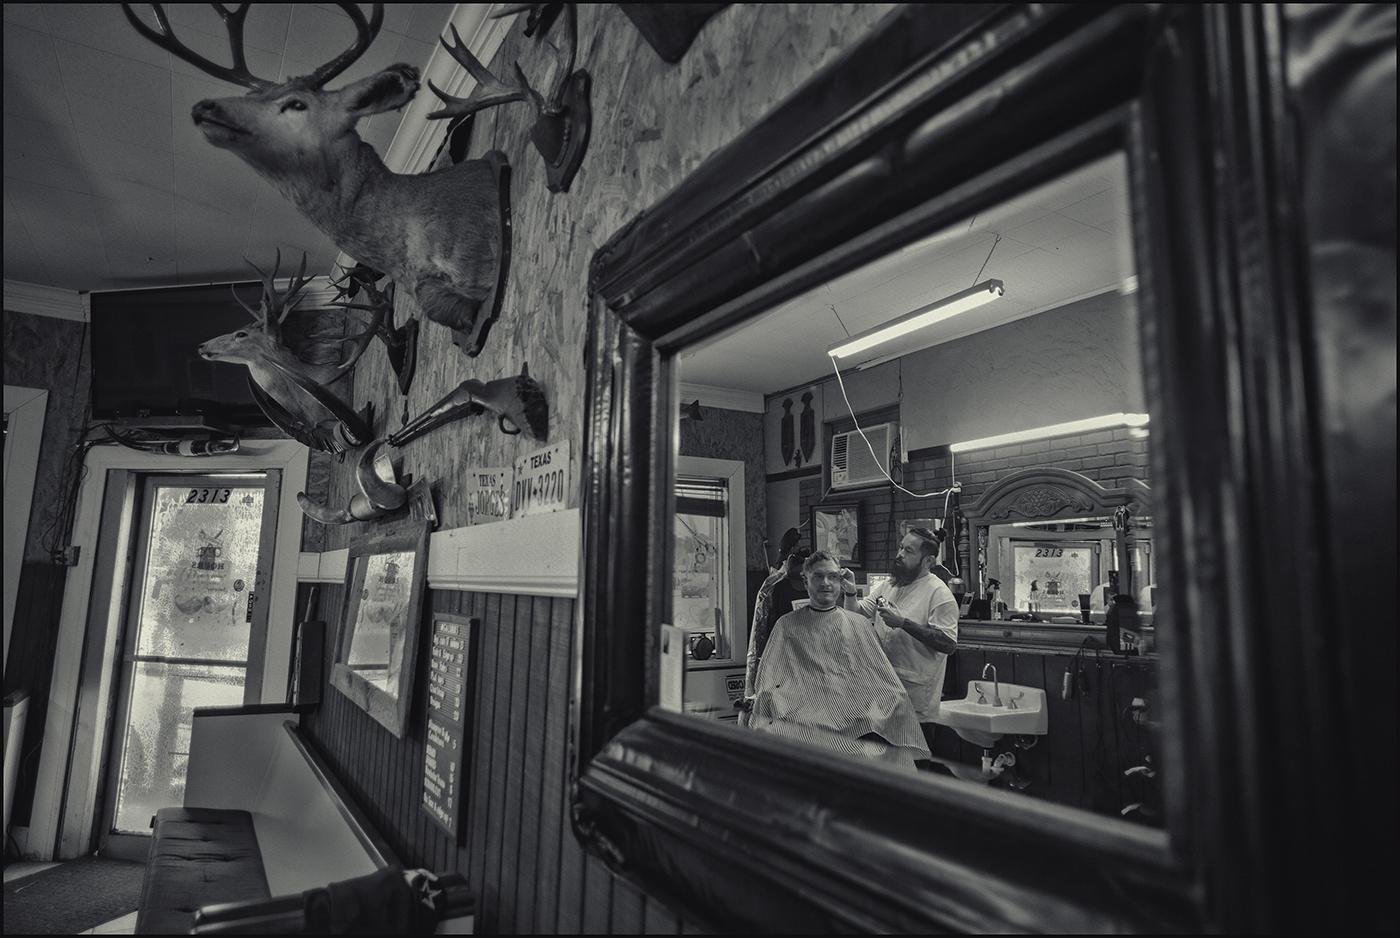 Galvan Barbershop, San Antonio, Texas. October, 2019.